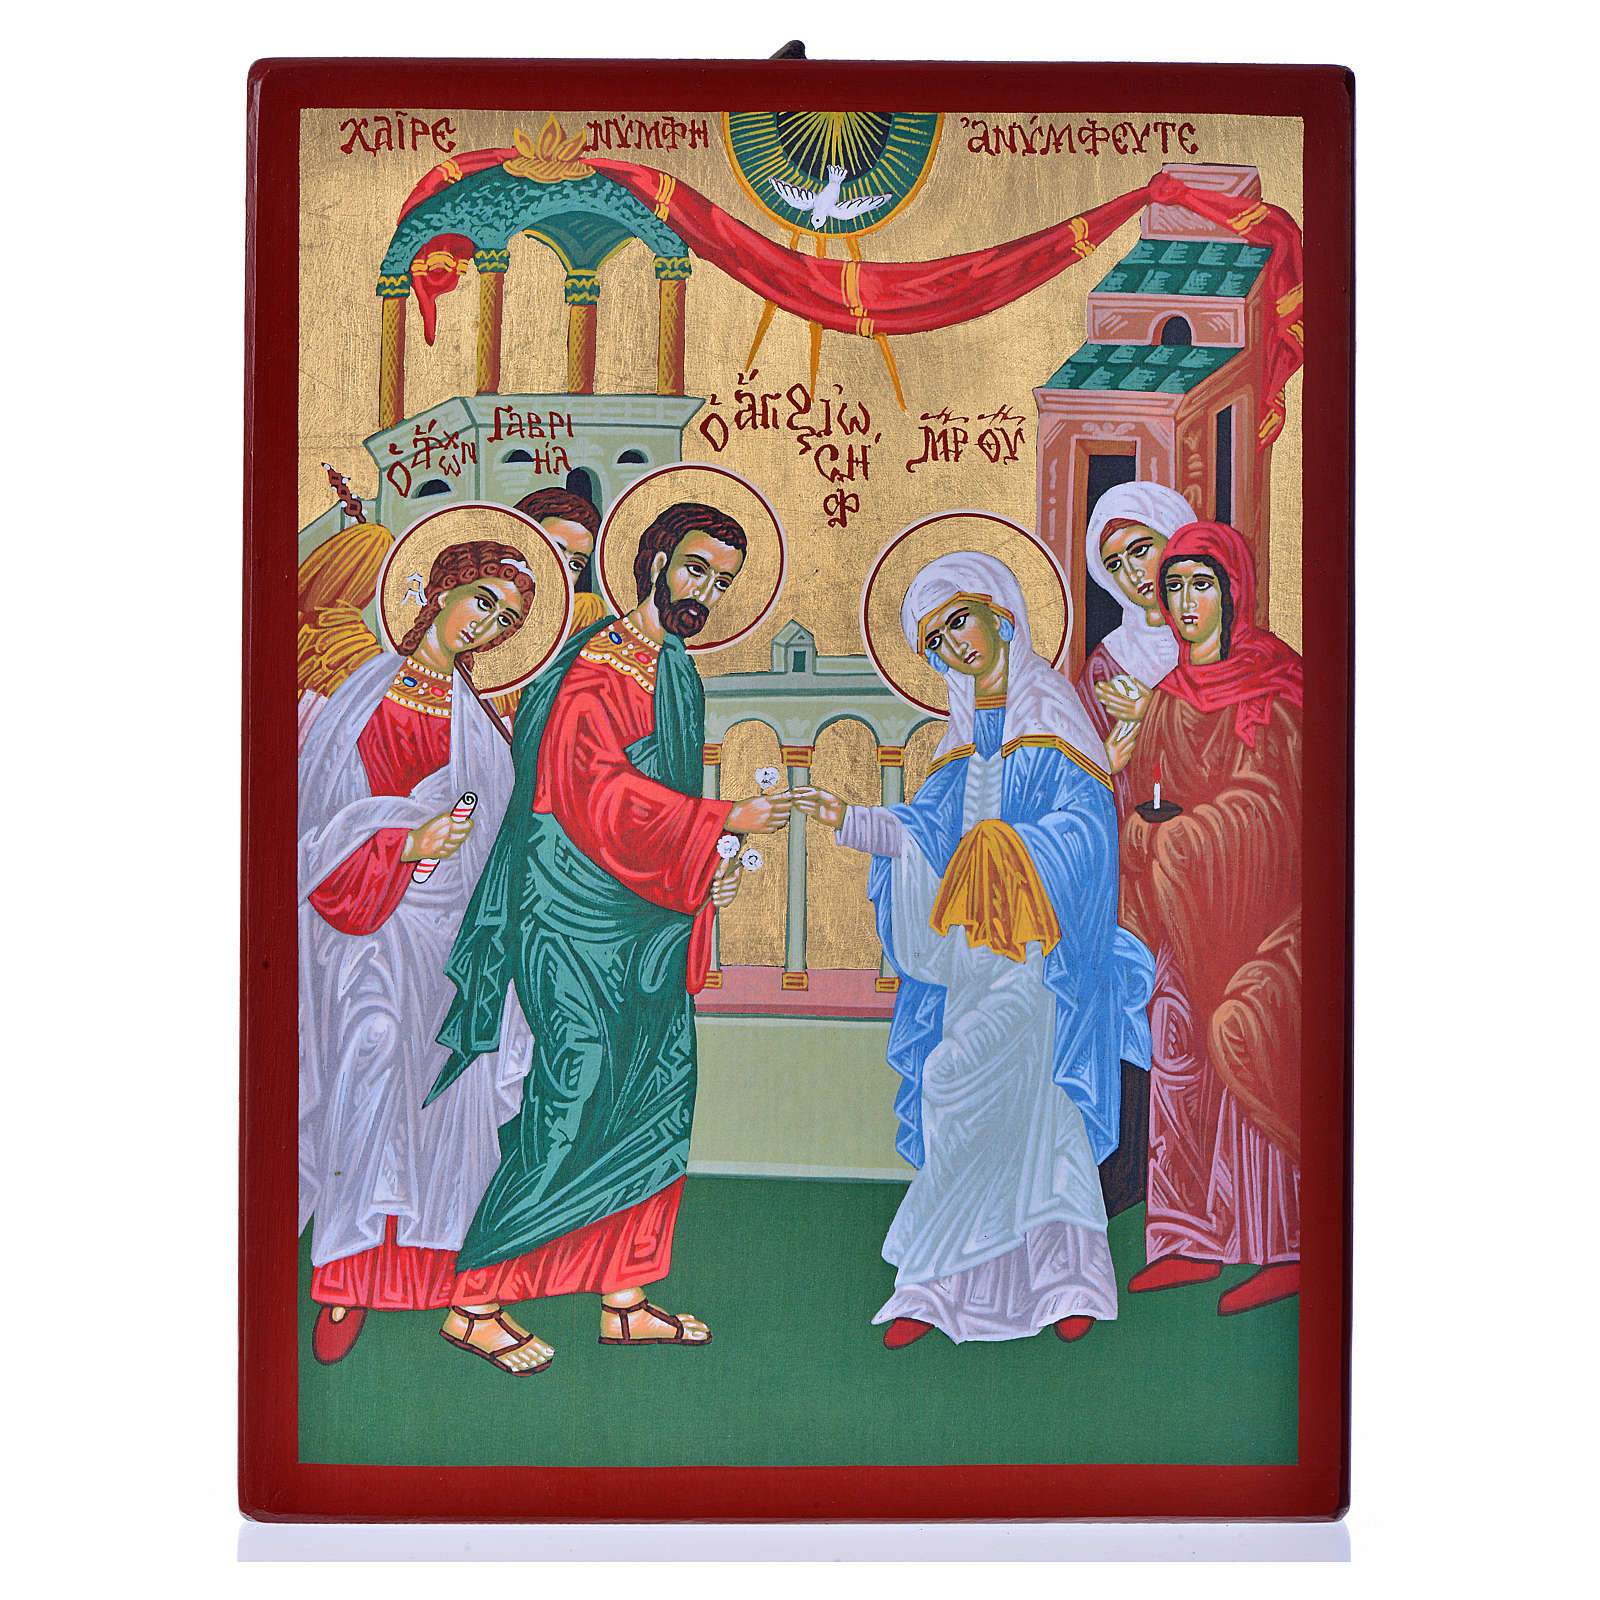 Joseph and Mary's wedding icon, 25x19cm, screenprinted in Greece 4